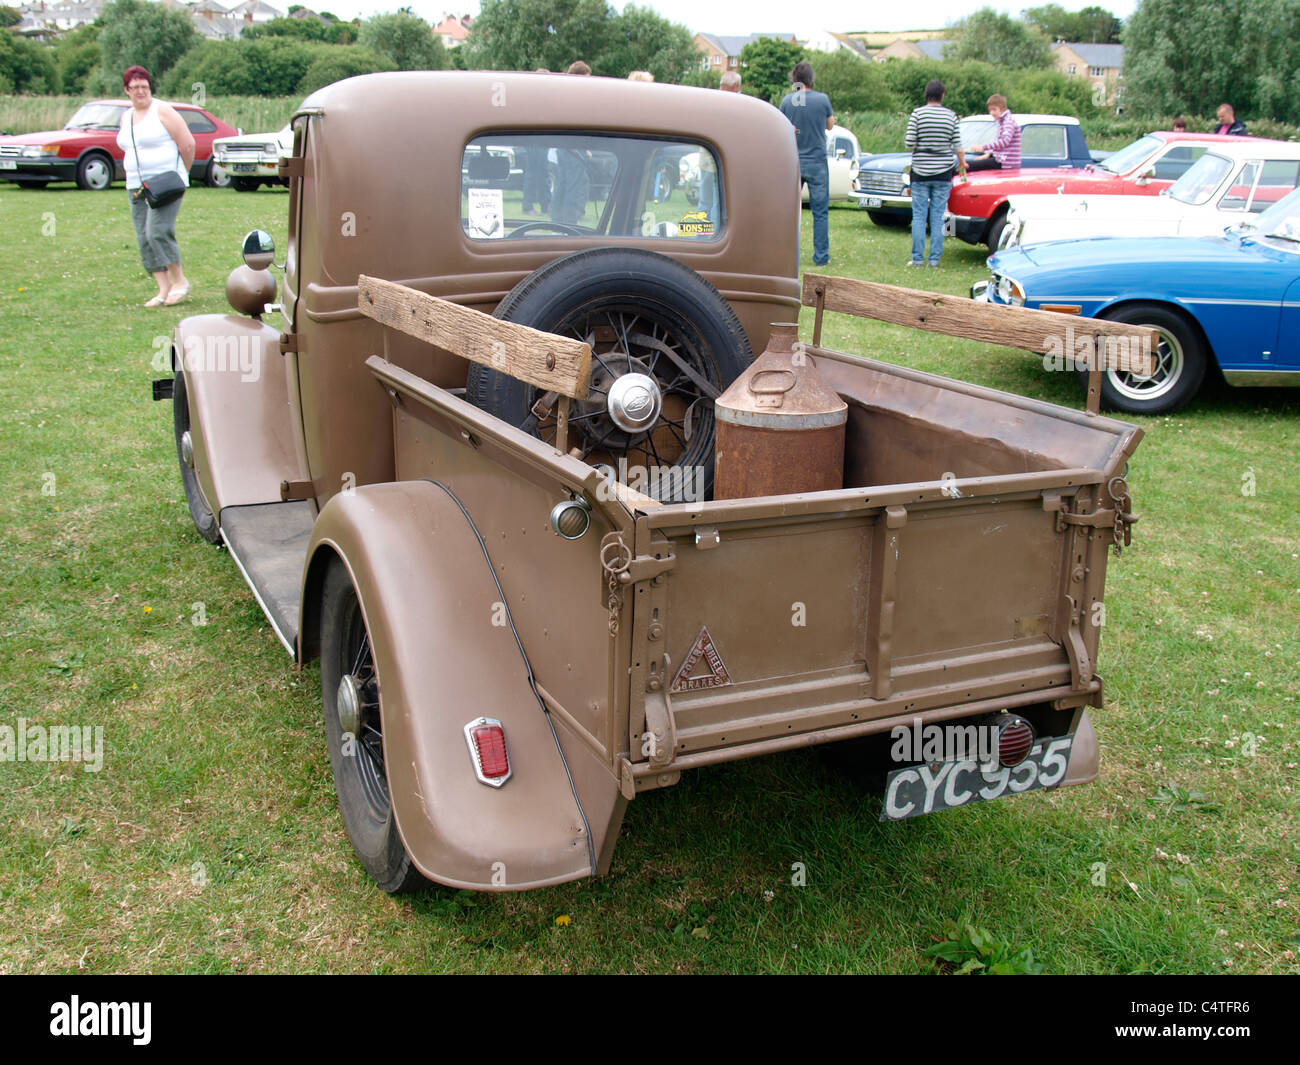 Vintage Ford Pick Up Truck Stock Photos 1941 Grain Bude Car Show Cornwall Uk Image